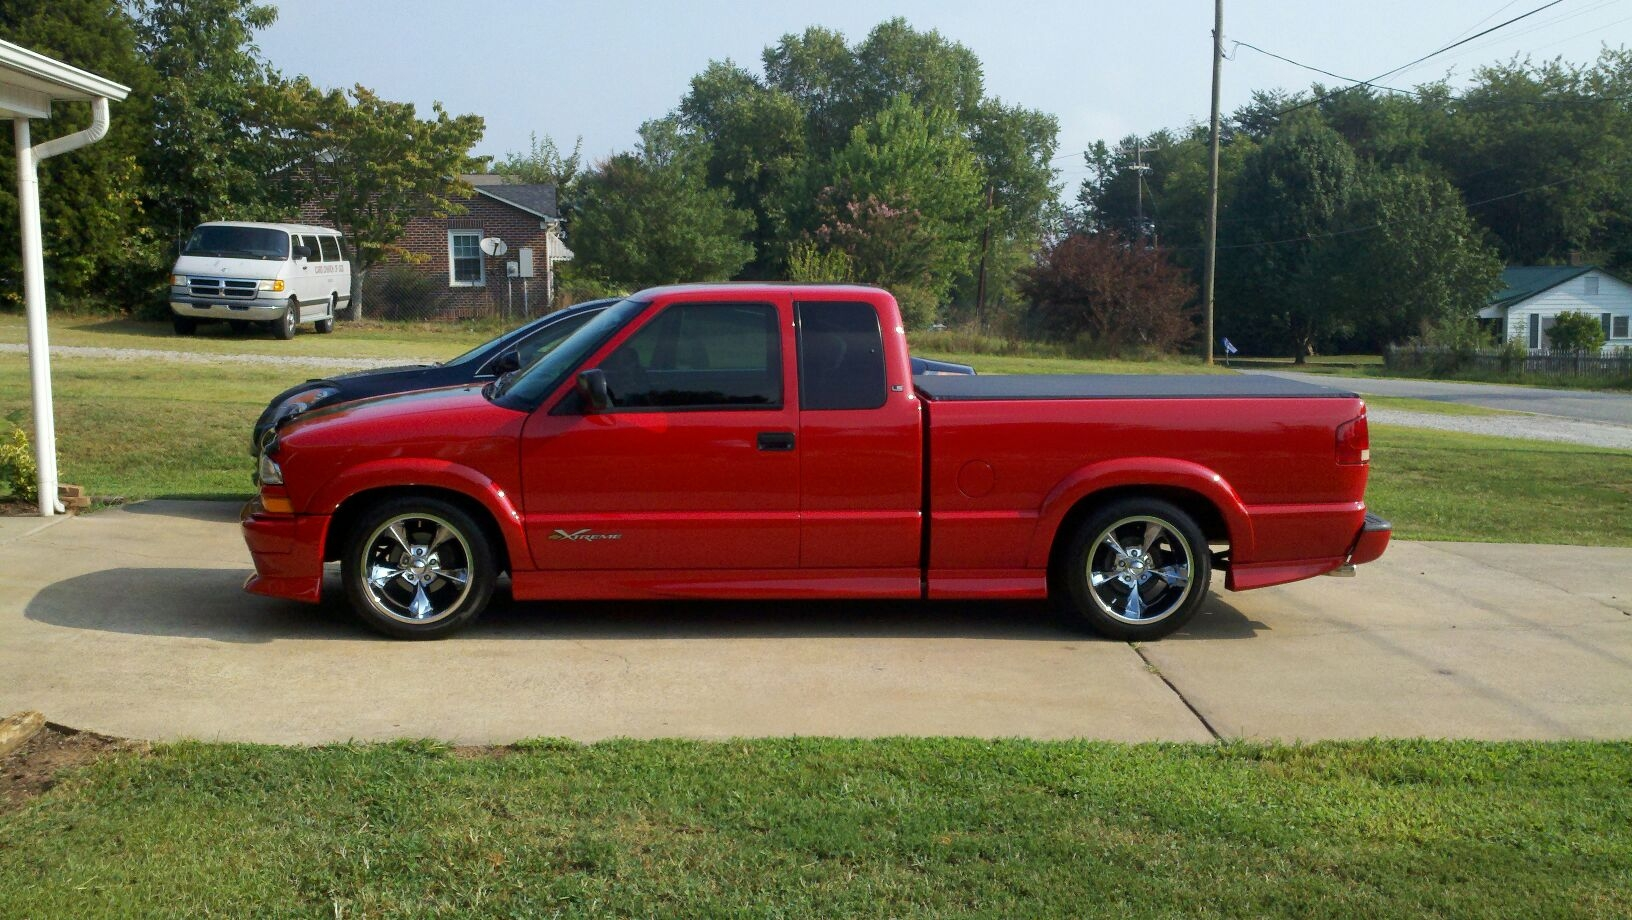 asherstan 2002 chevrolet s10 extended cabpickup specs photos modification info at cardomain. Black Bedroom Furniture Sets. Home Design Ideas